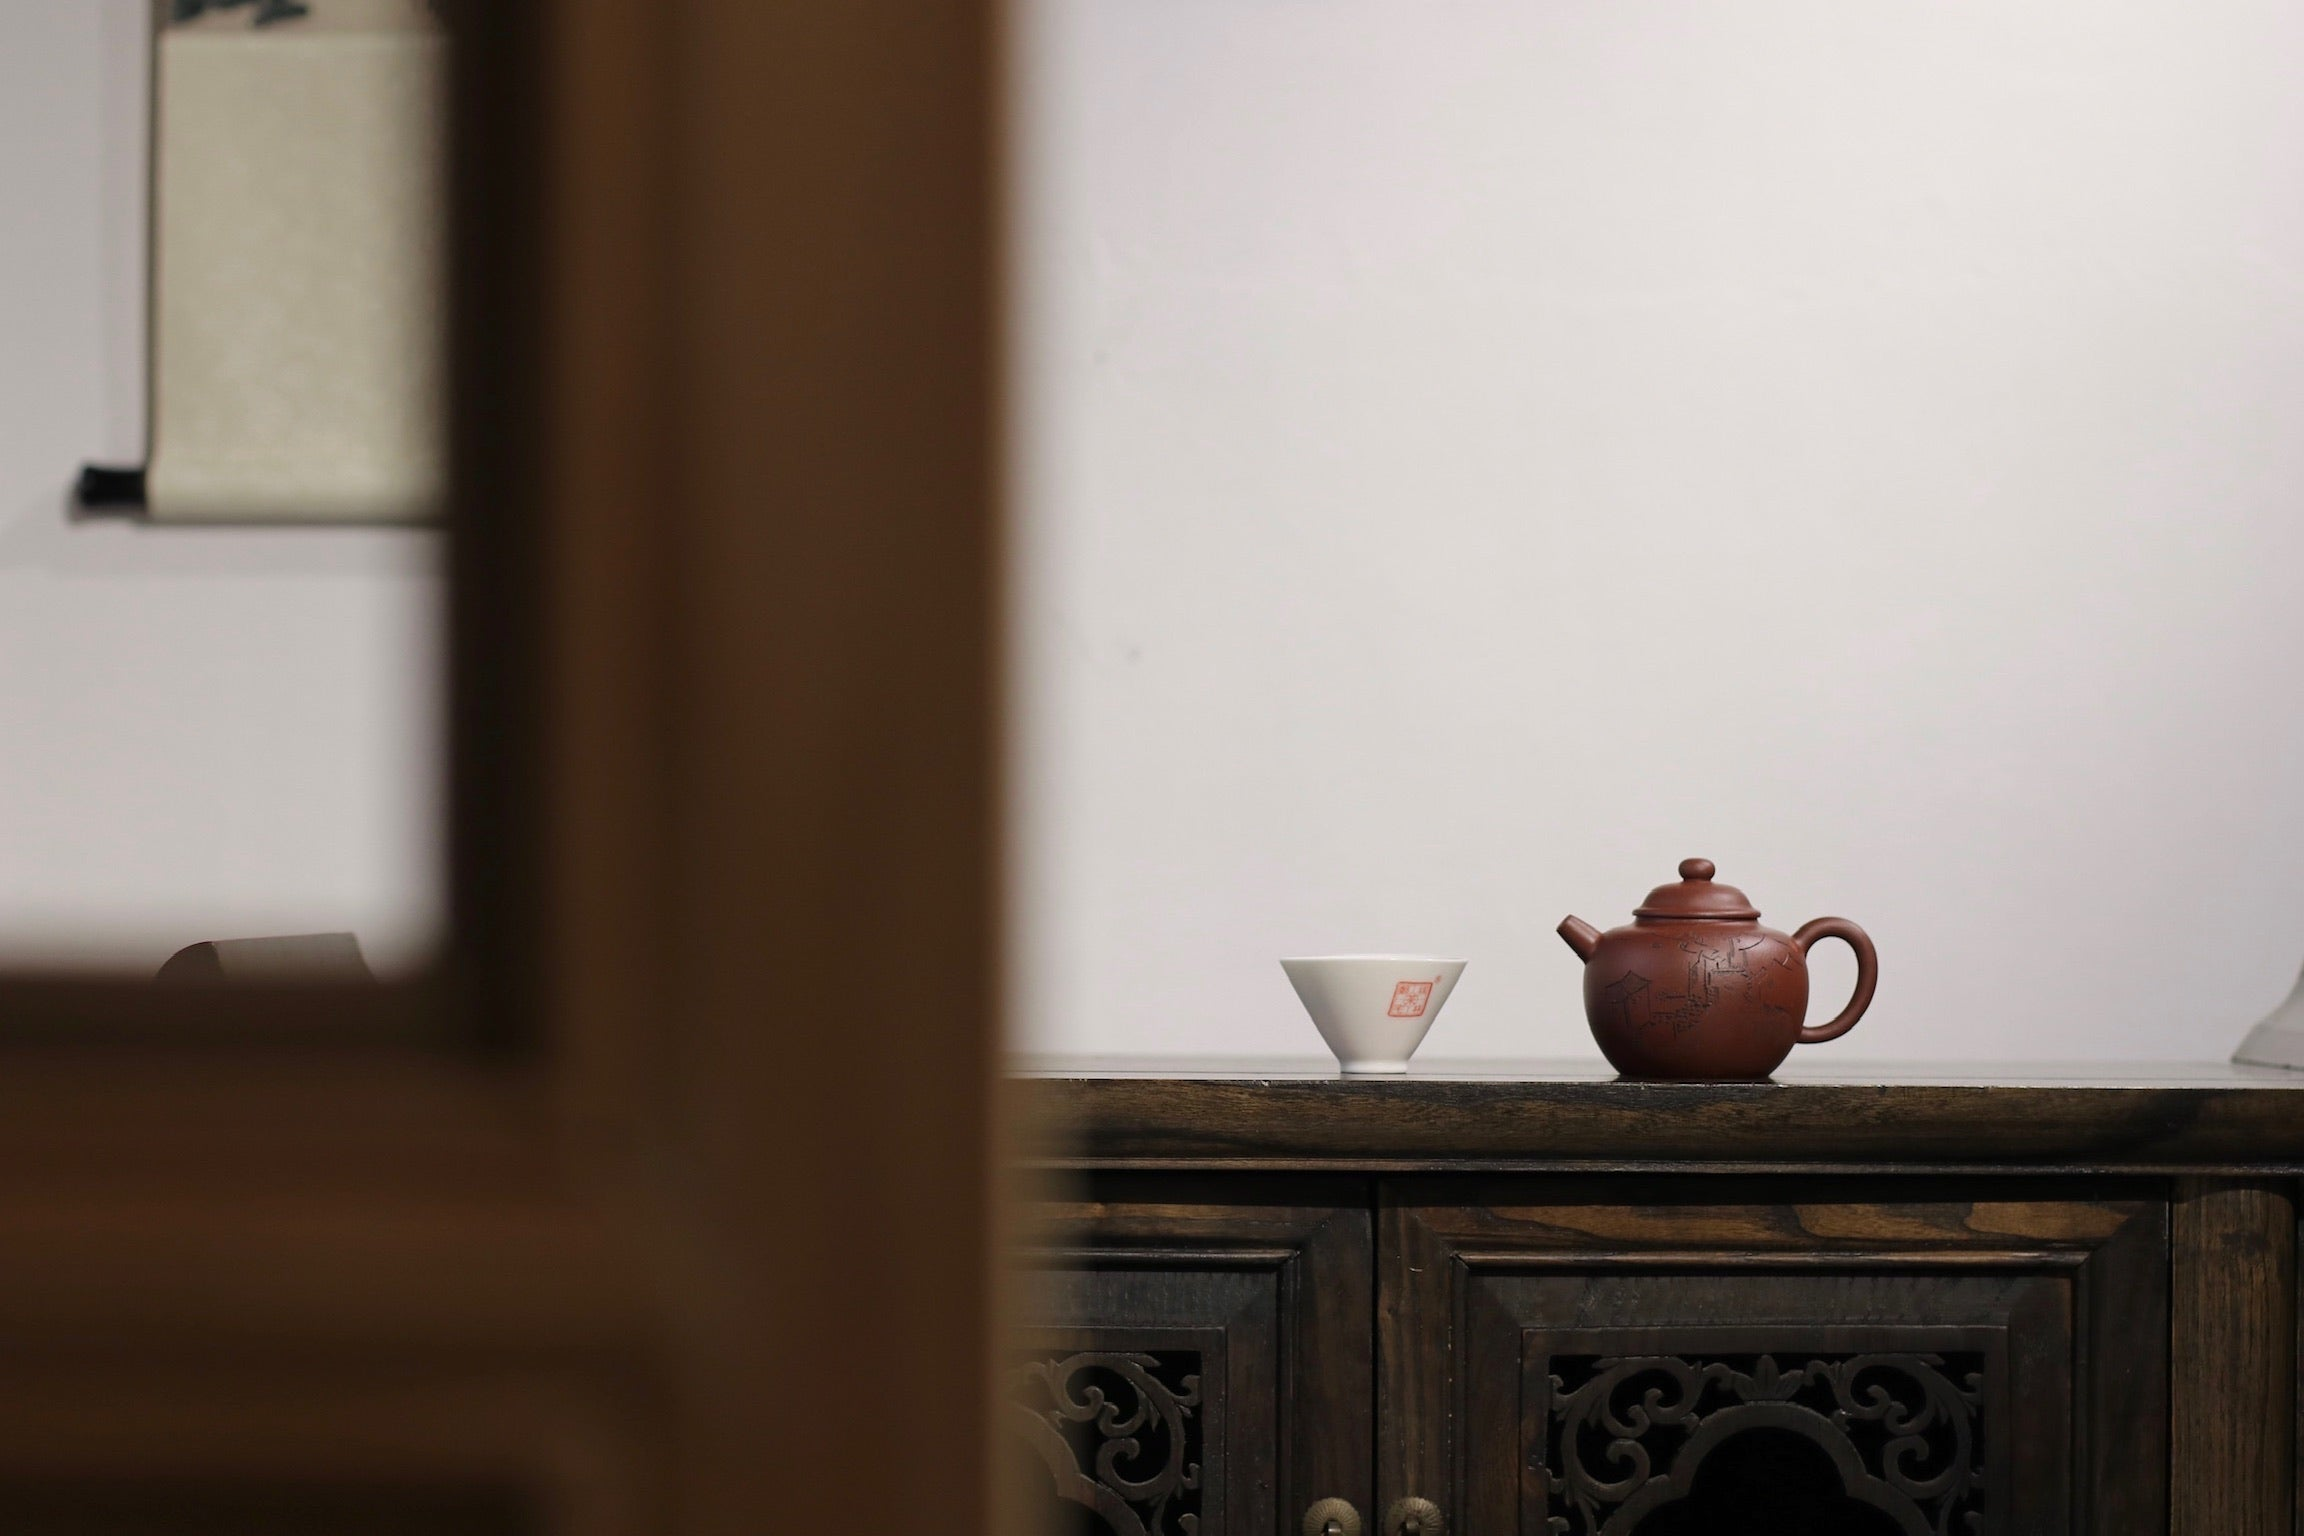 Yuan Ju Lun Hu 王建芳 圆巨轮 250ml with 朱婷. carving 江南 aged zini - The Phans Yixing Zisha Teapot